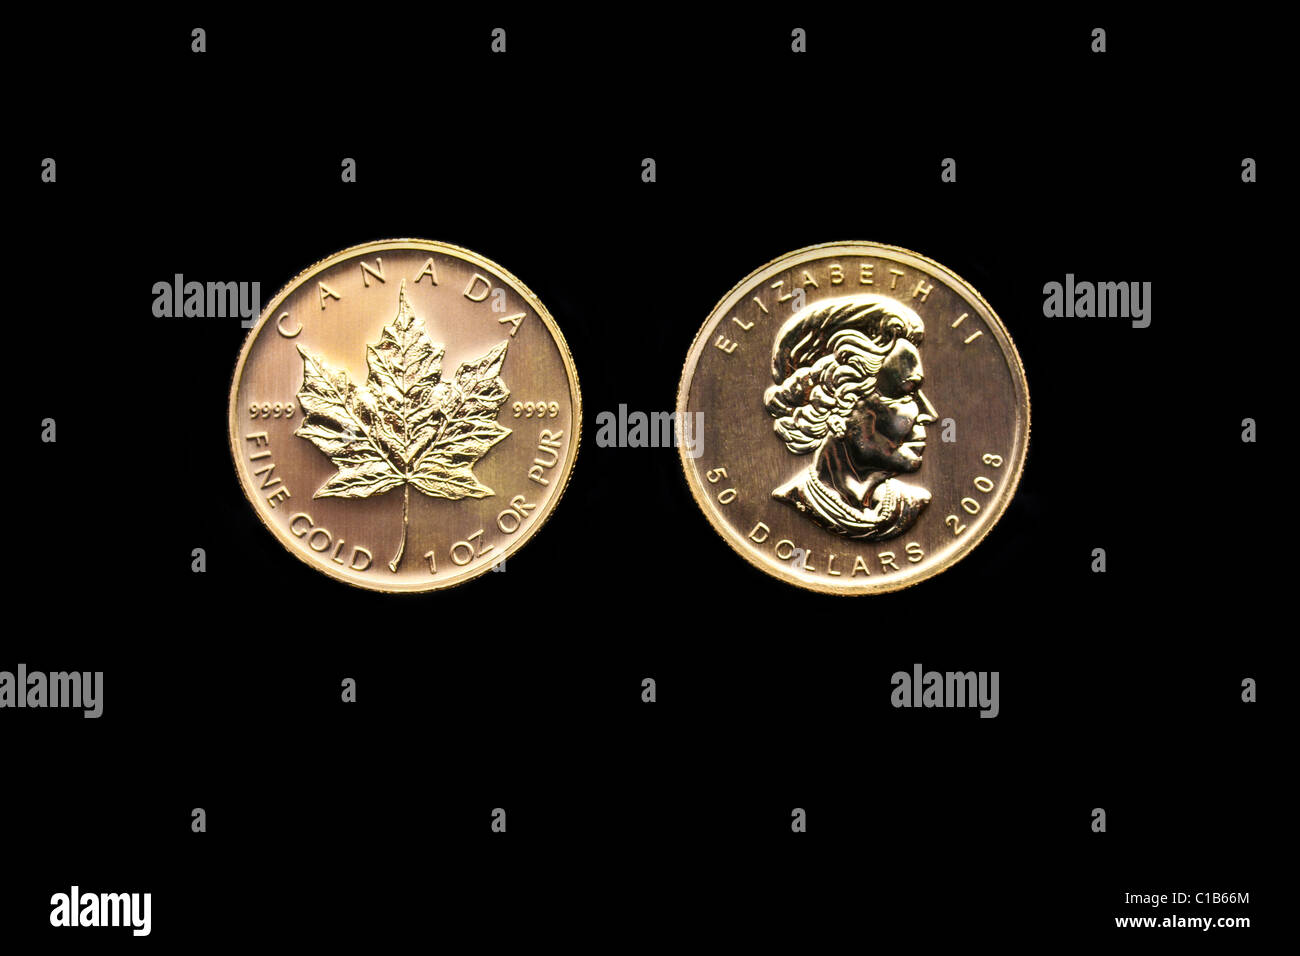 Troy Ounce Stock Photos Amp Troy Ounce Stock Images Alamy